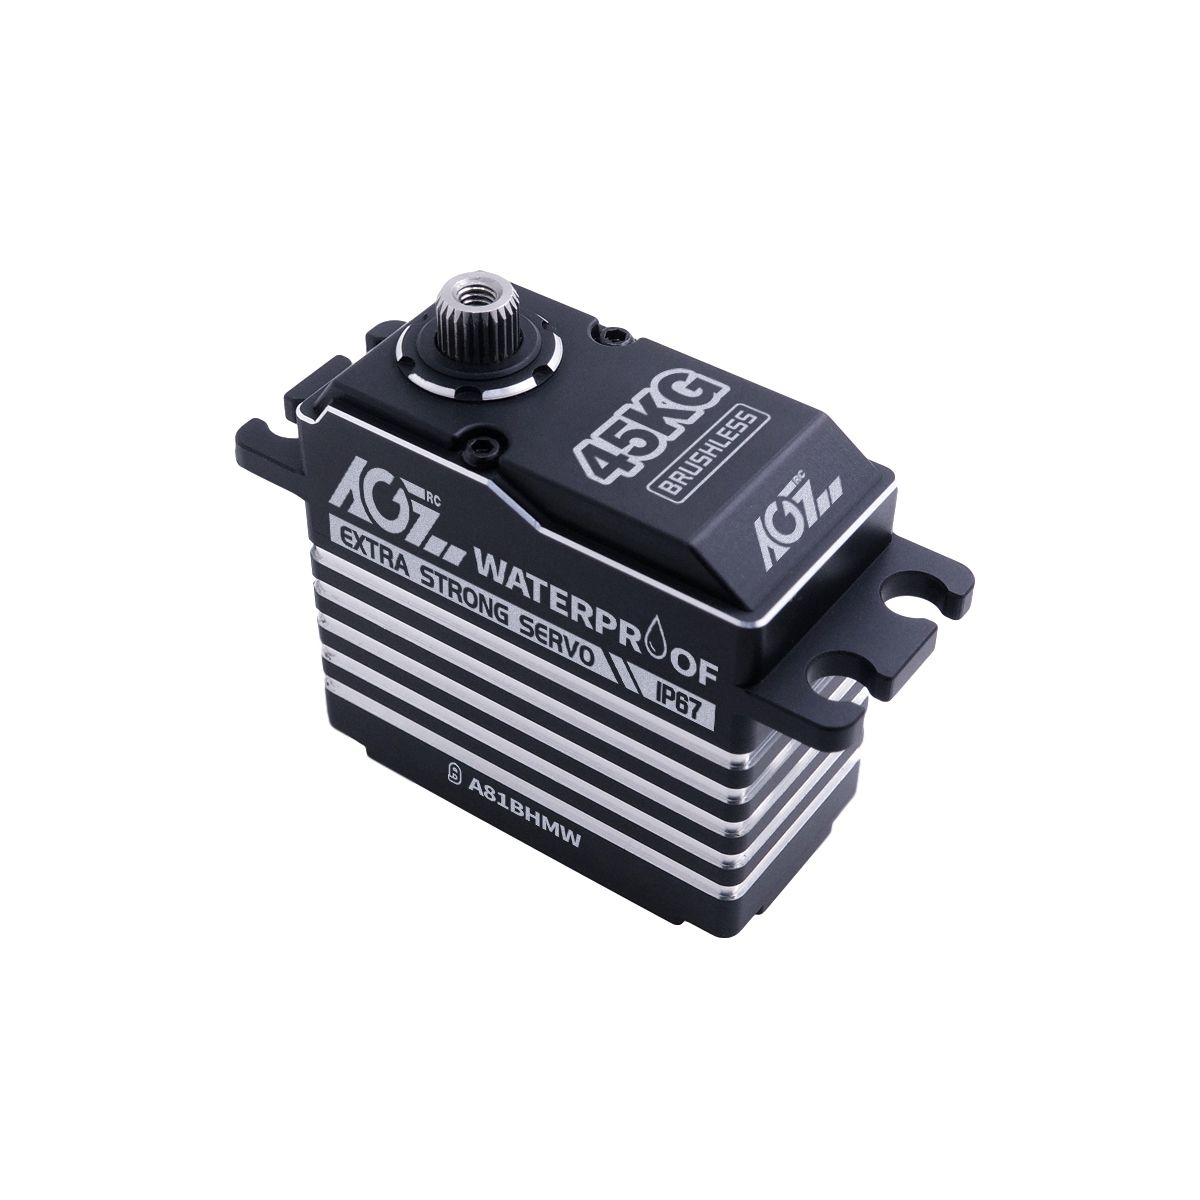 AGFrc A81BHMW 45KG Superb Torque Aluminum Case IP67 Waterproof Digital Servo for 1/8 RC Buggy